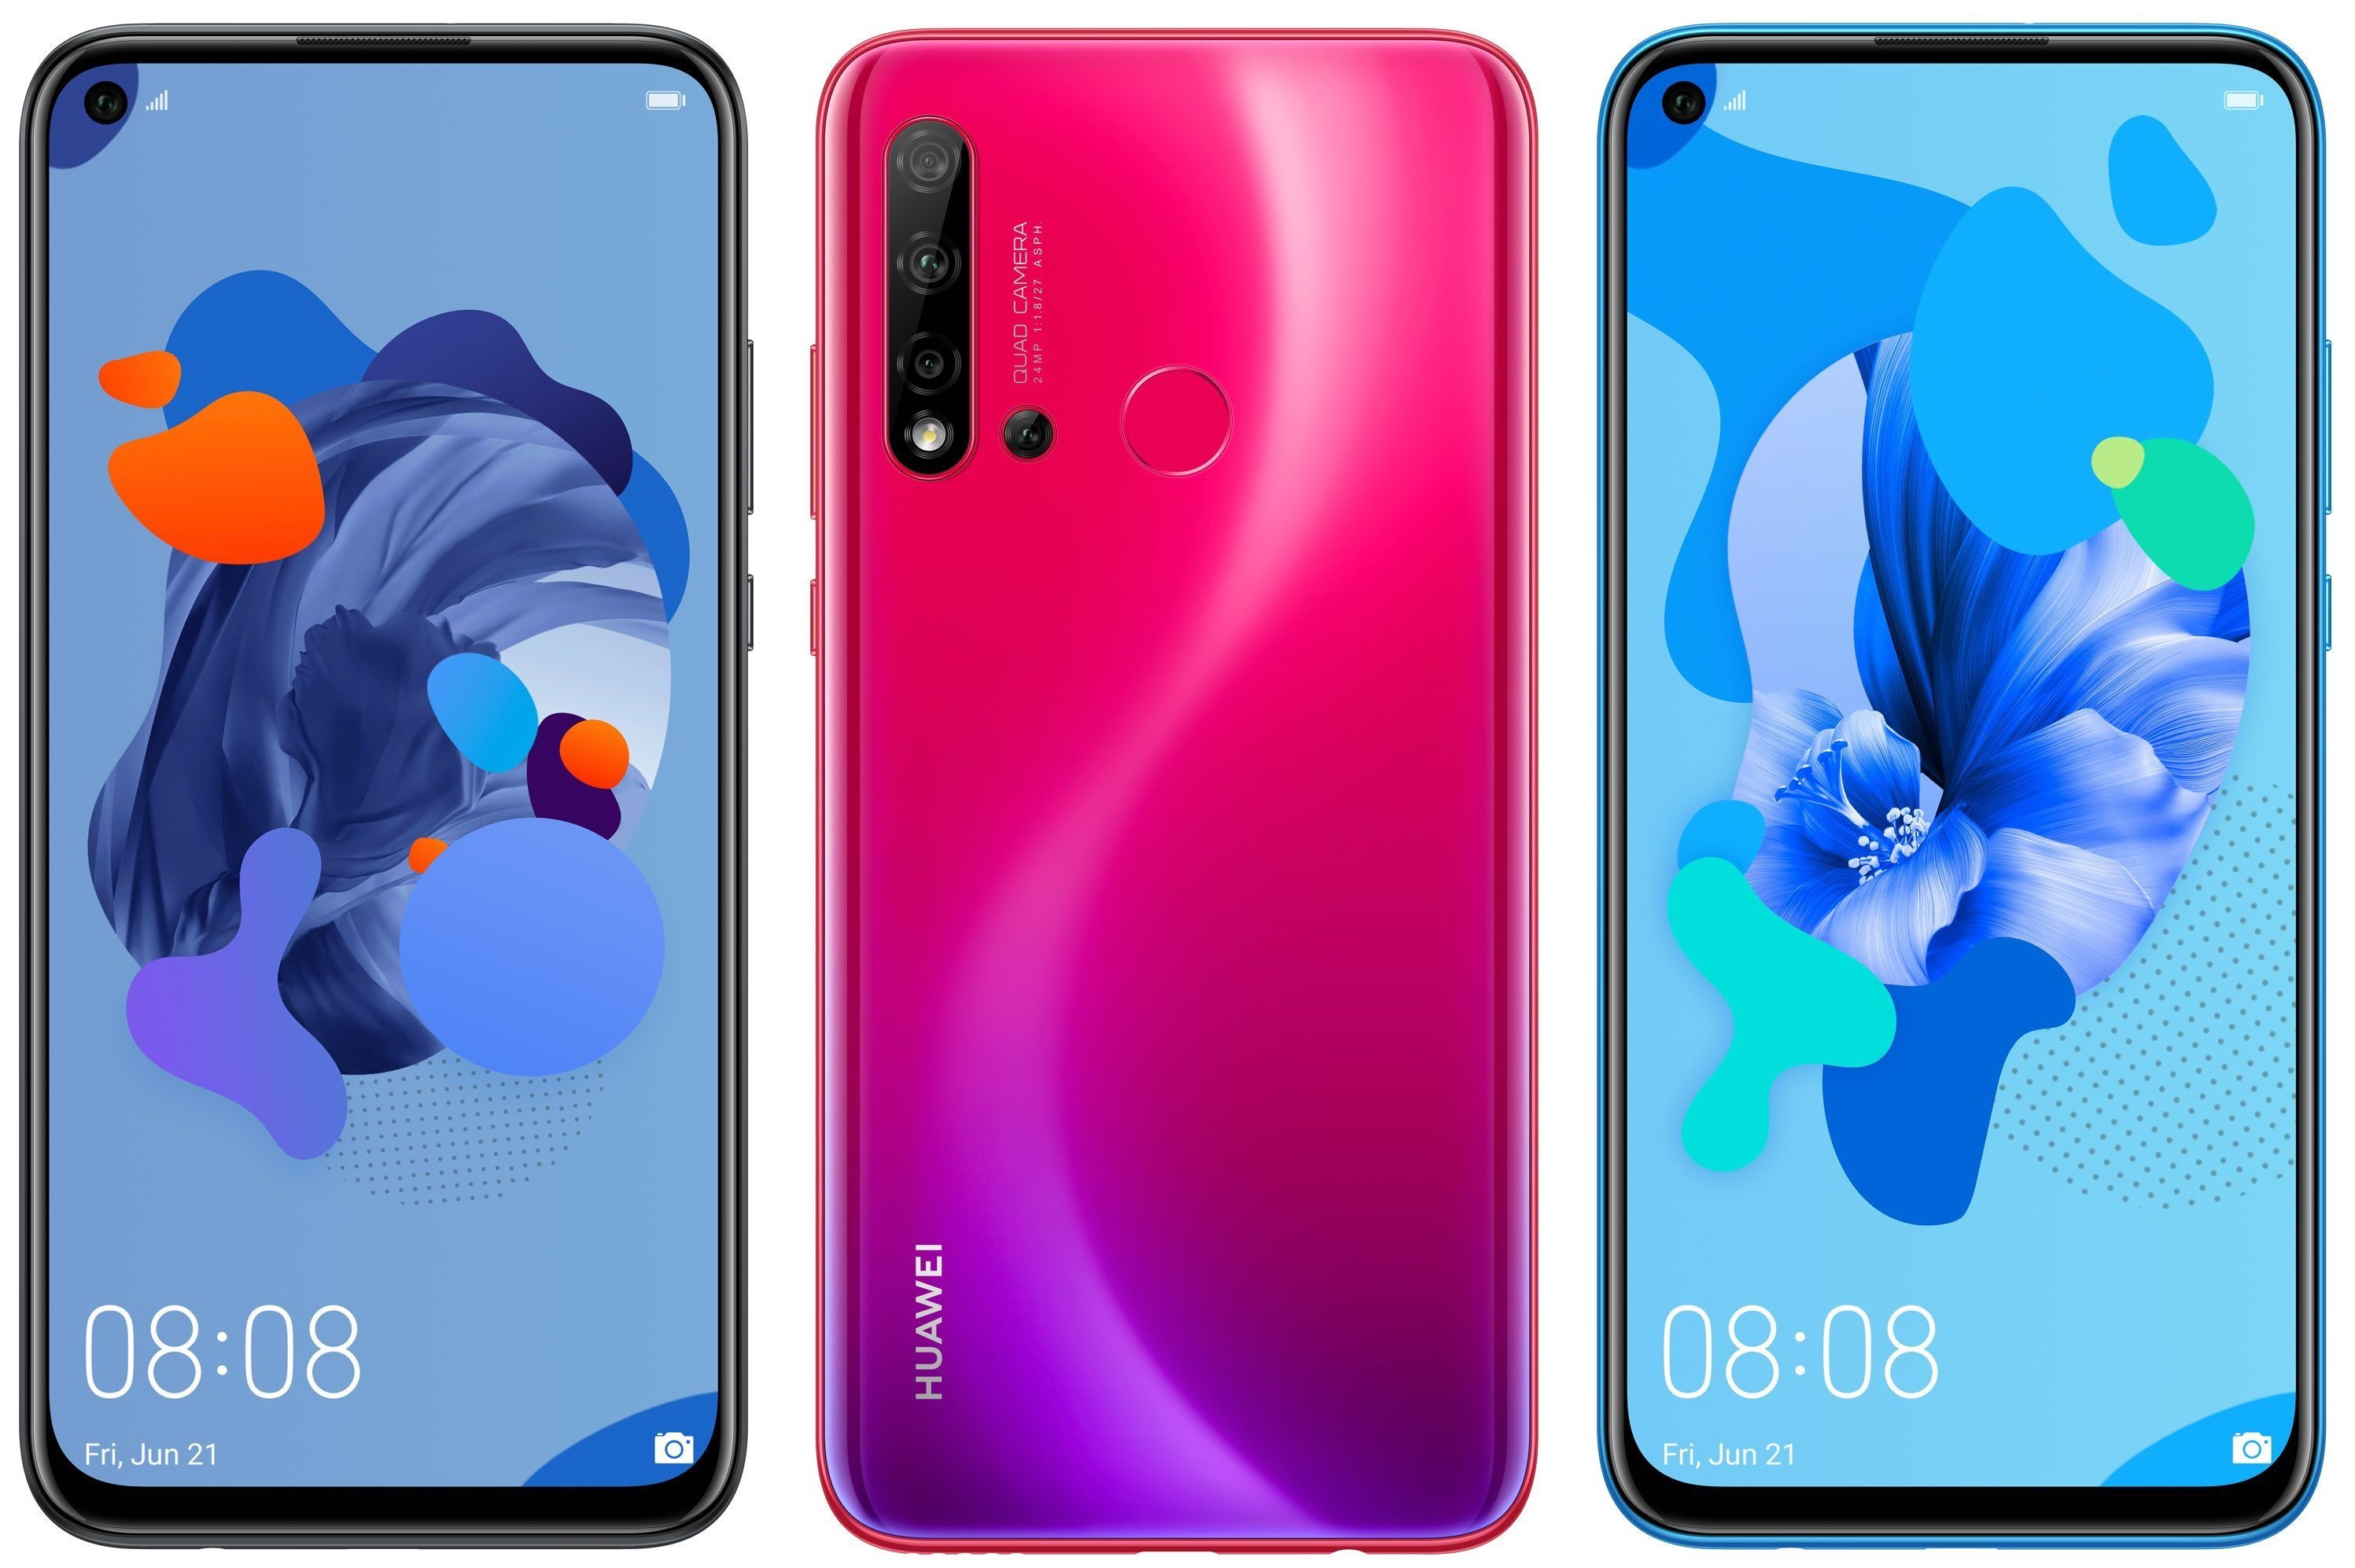 Huawei just launched another phone you'll be sad you can't buy